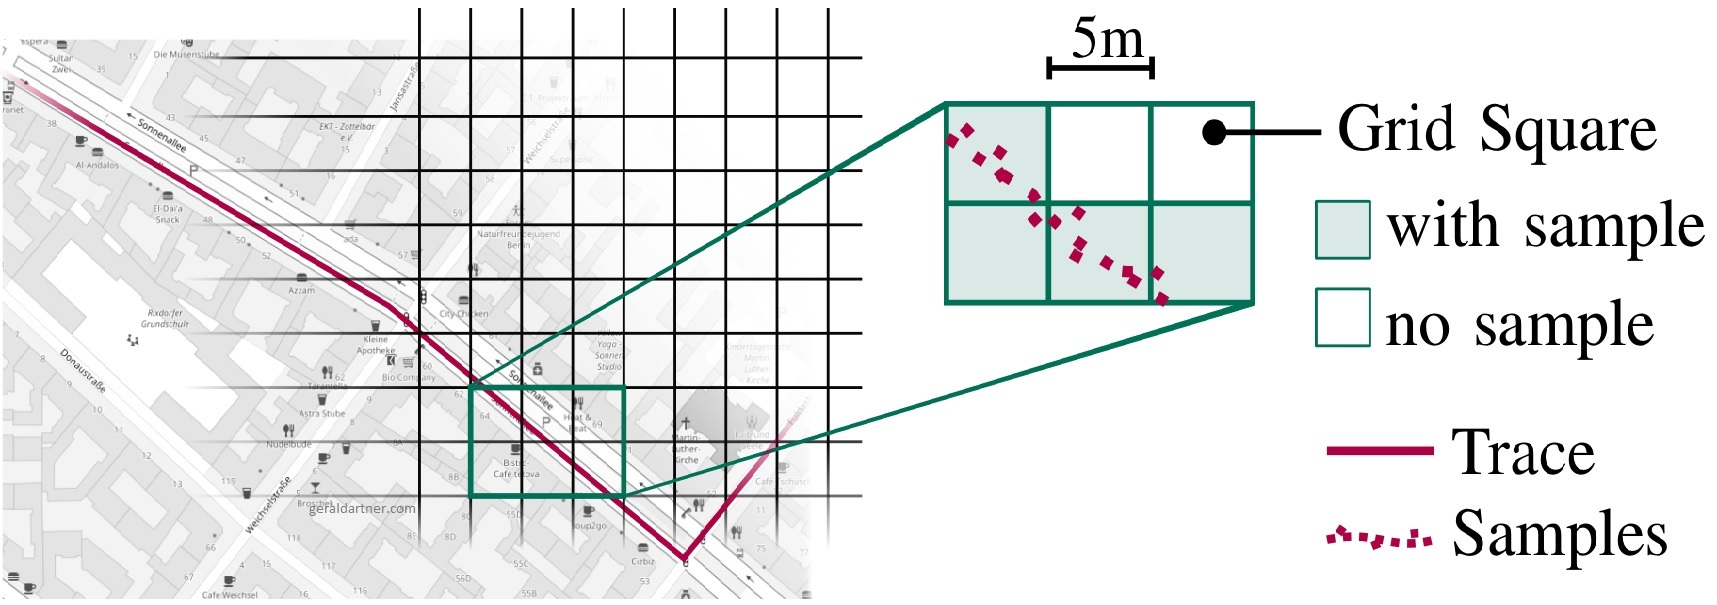 Evaluating Coverage Based on Grid Squares